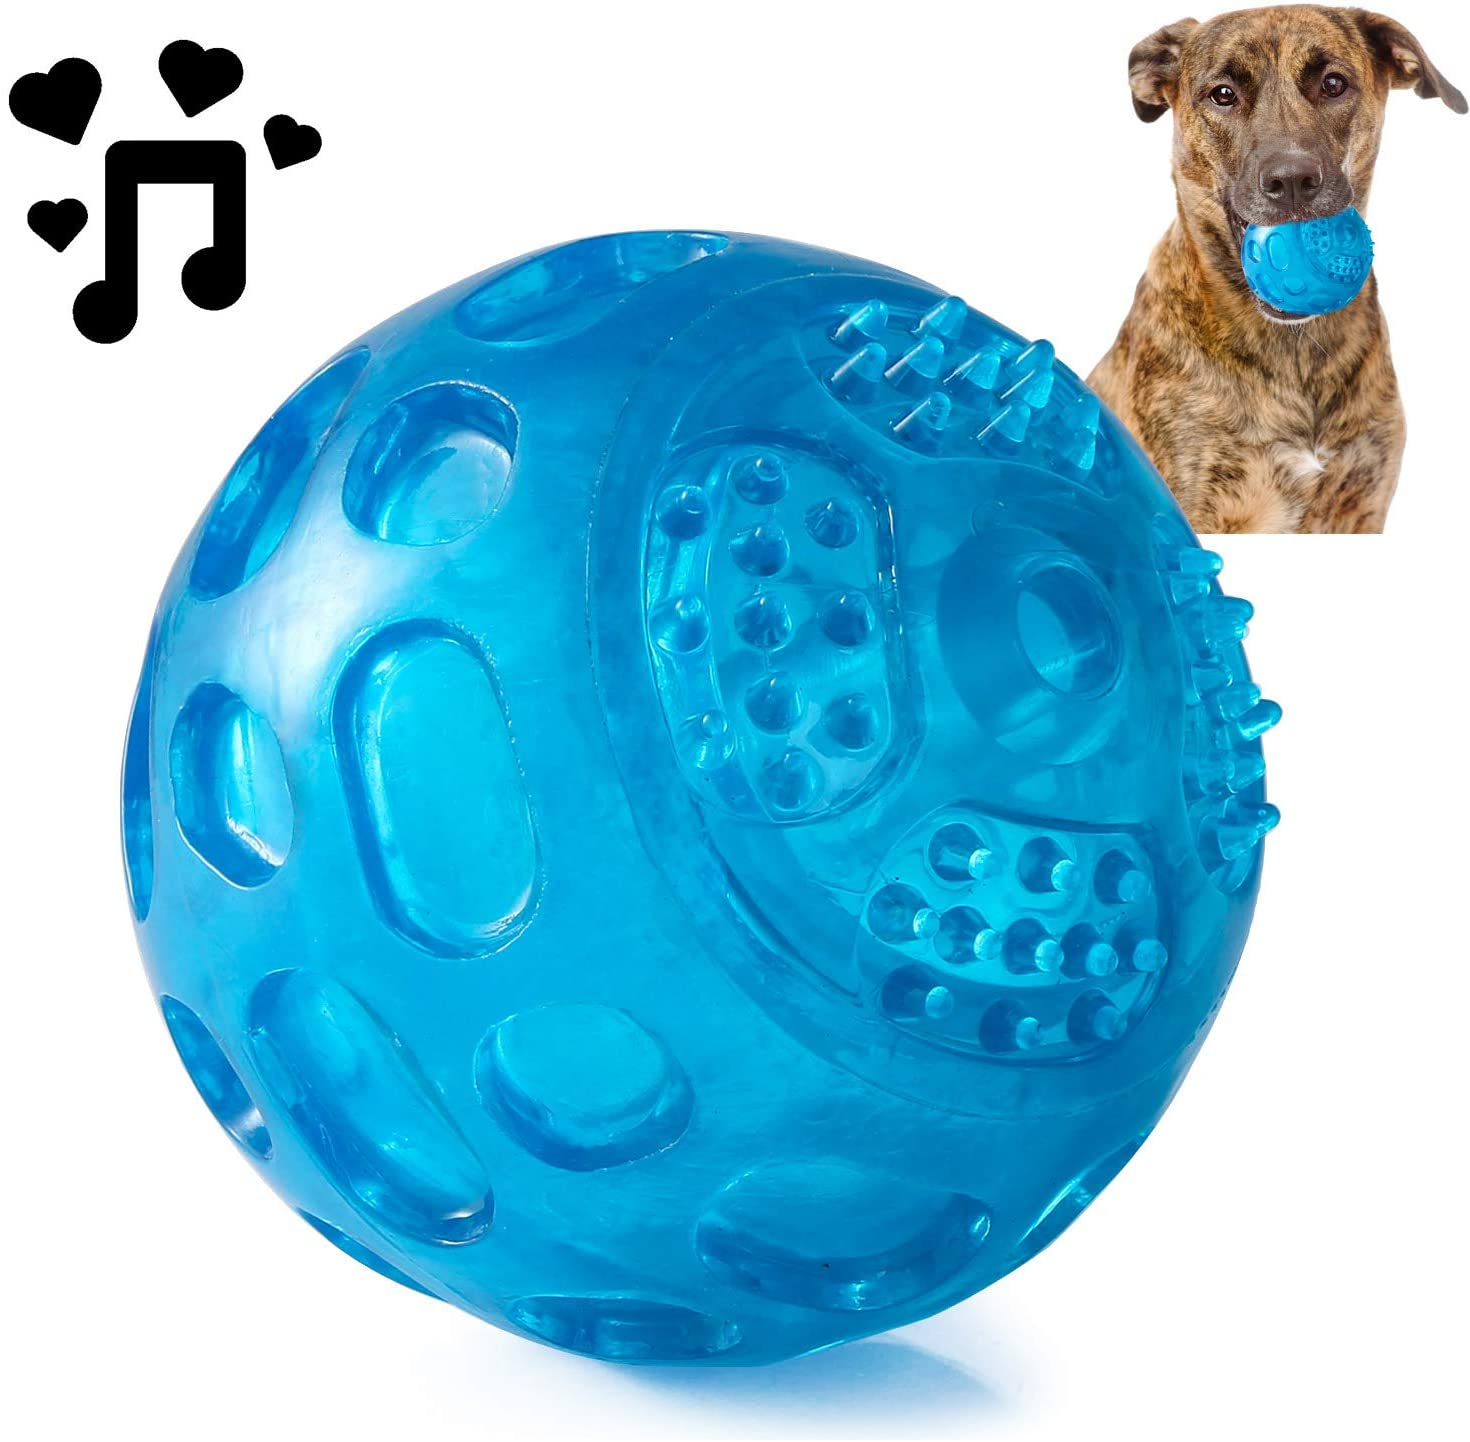 PJDH 3.2 Inch Durable Pet Dog Balls Toys Rubber Squeak Dog Ball Indestructible Dog Toy Ball Interactive Toy